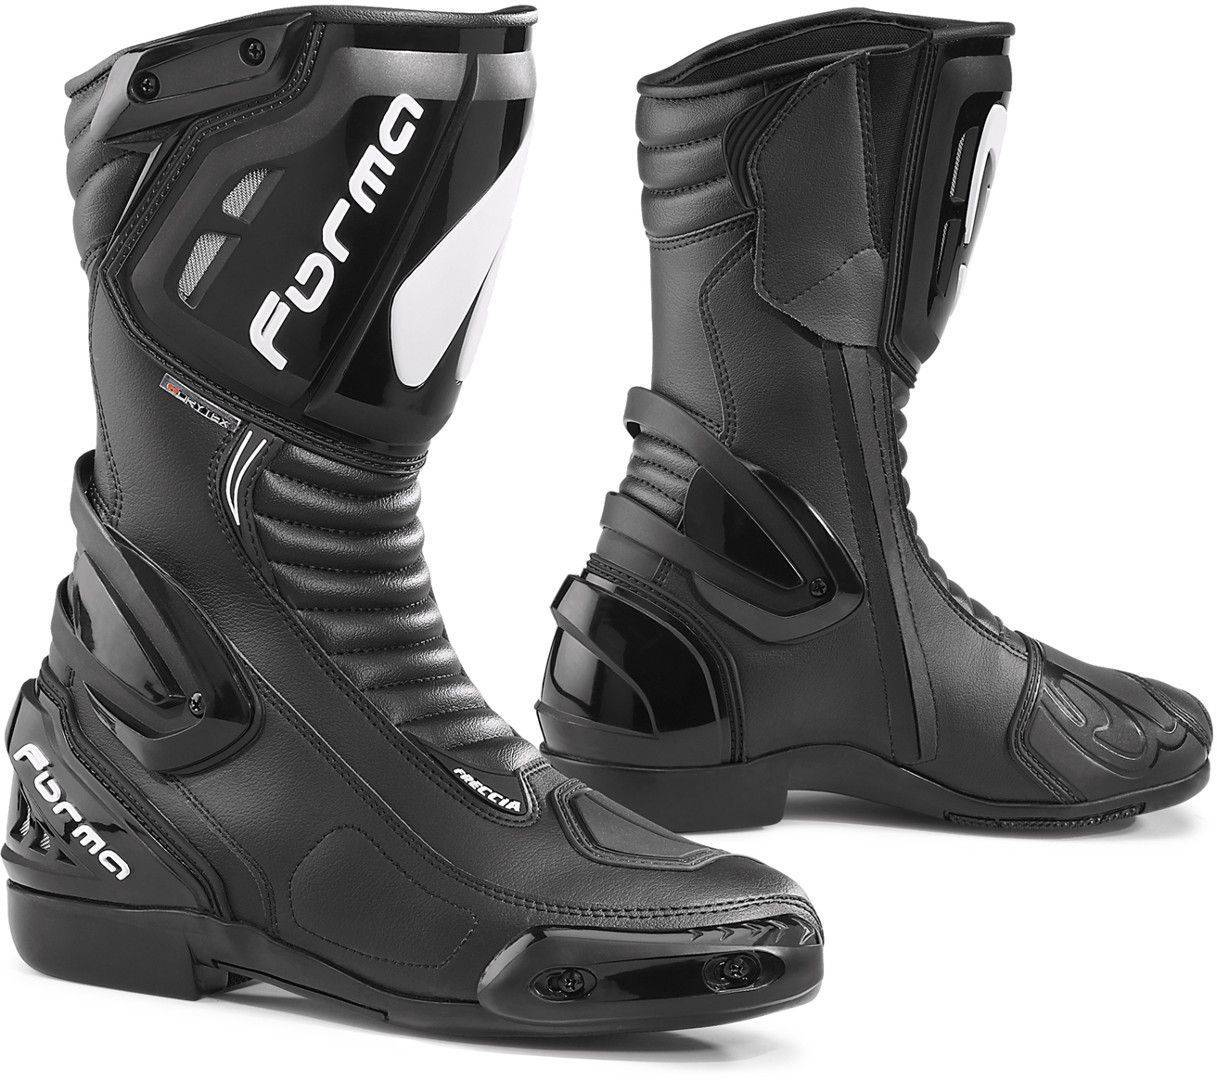 Forma Freccia Dry Motorcycle Boots Black 41